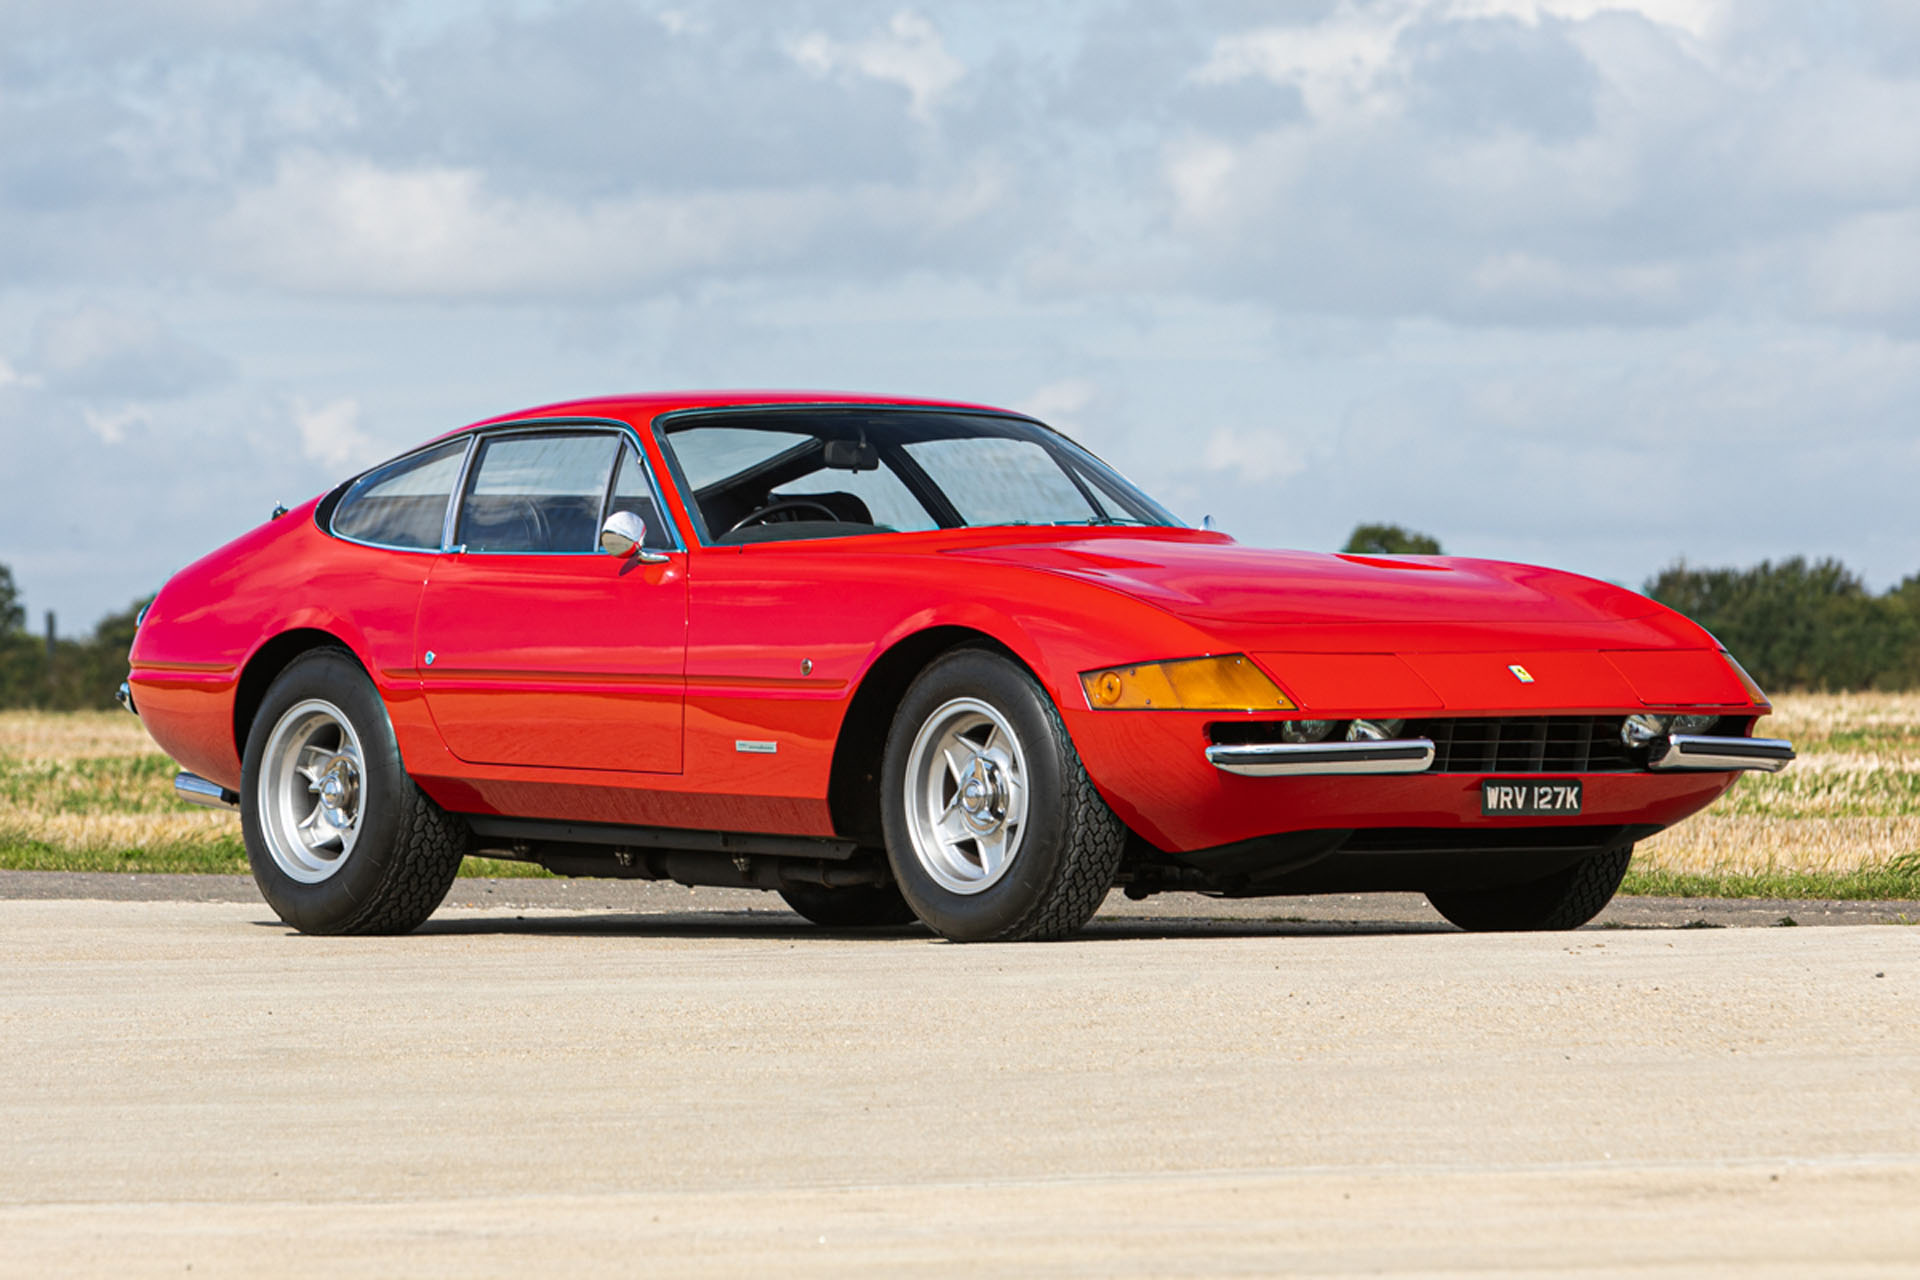 Sir Elton John S 1972 Ferrari 365 Gtb 4 Daytona Headed To Auction